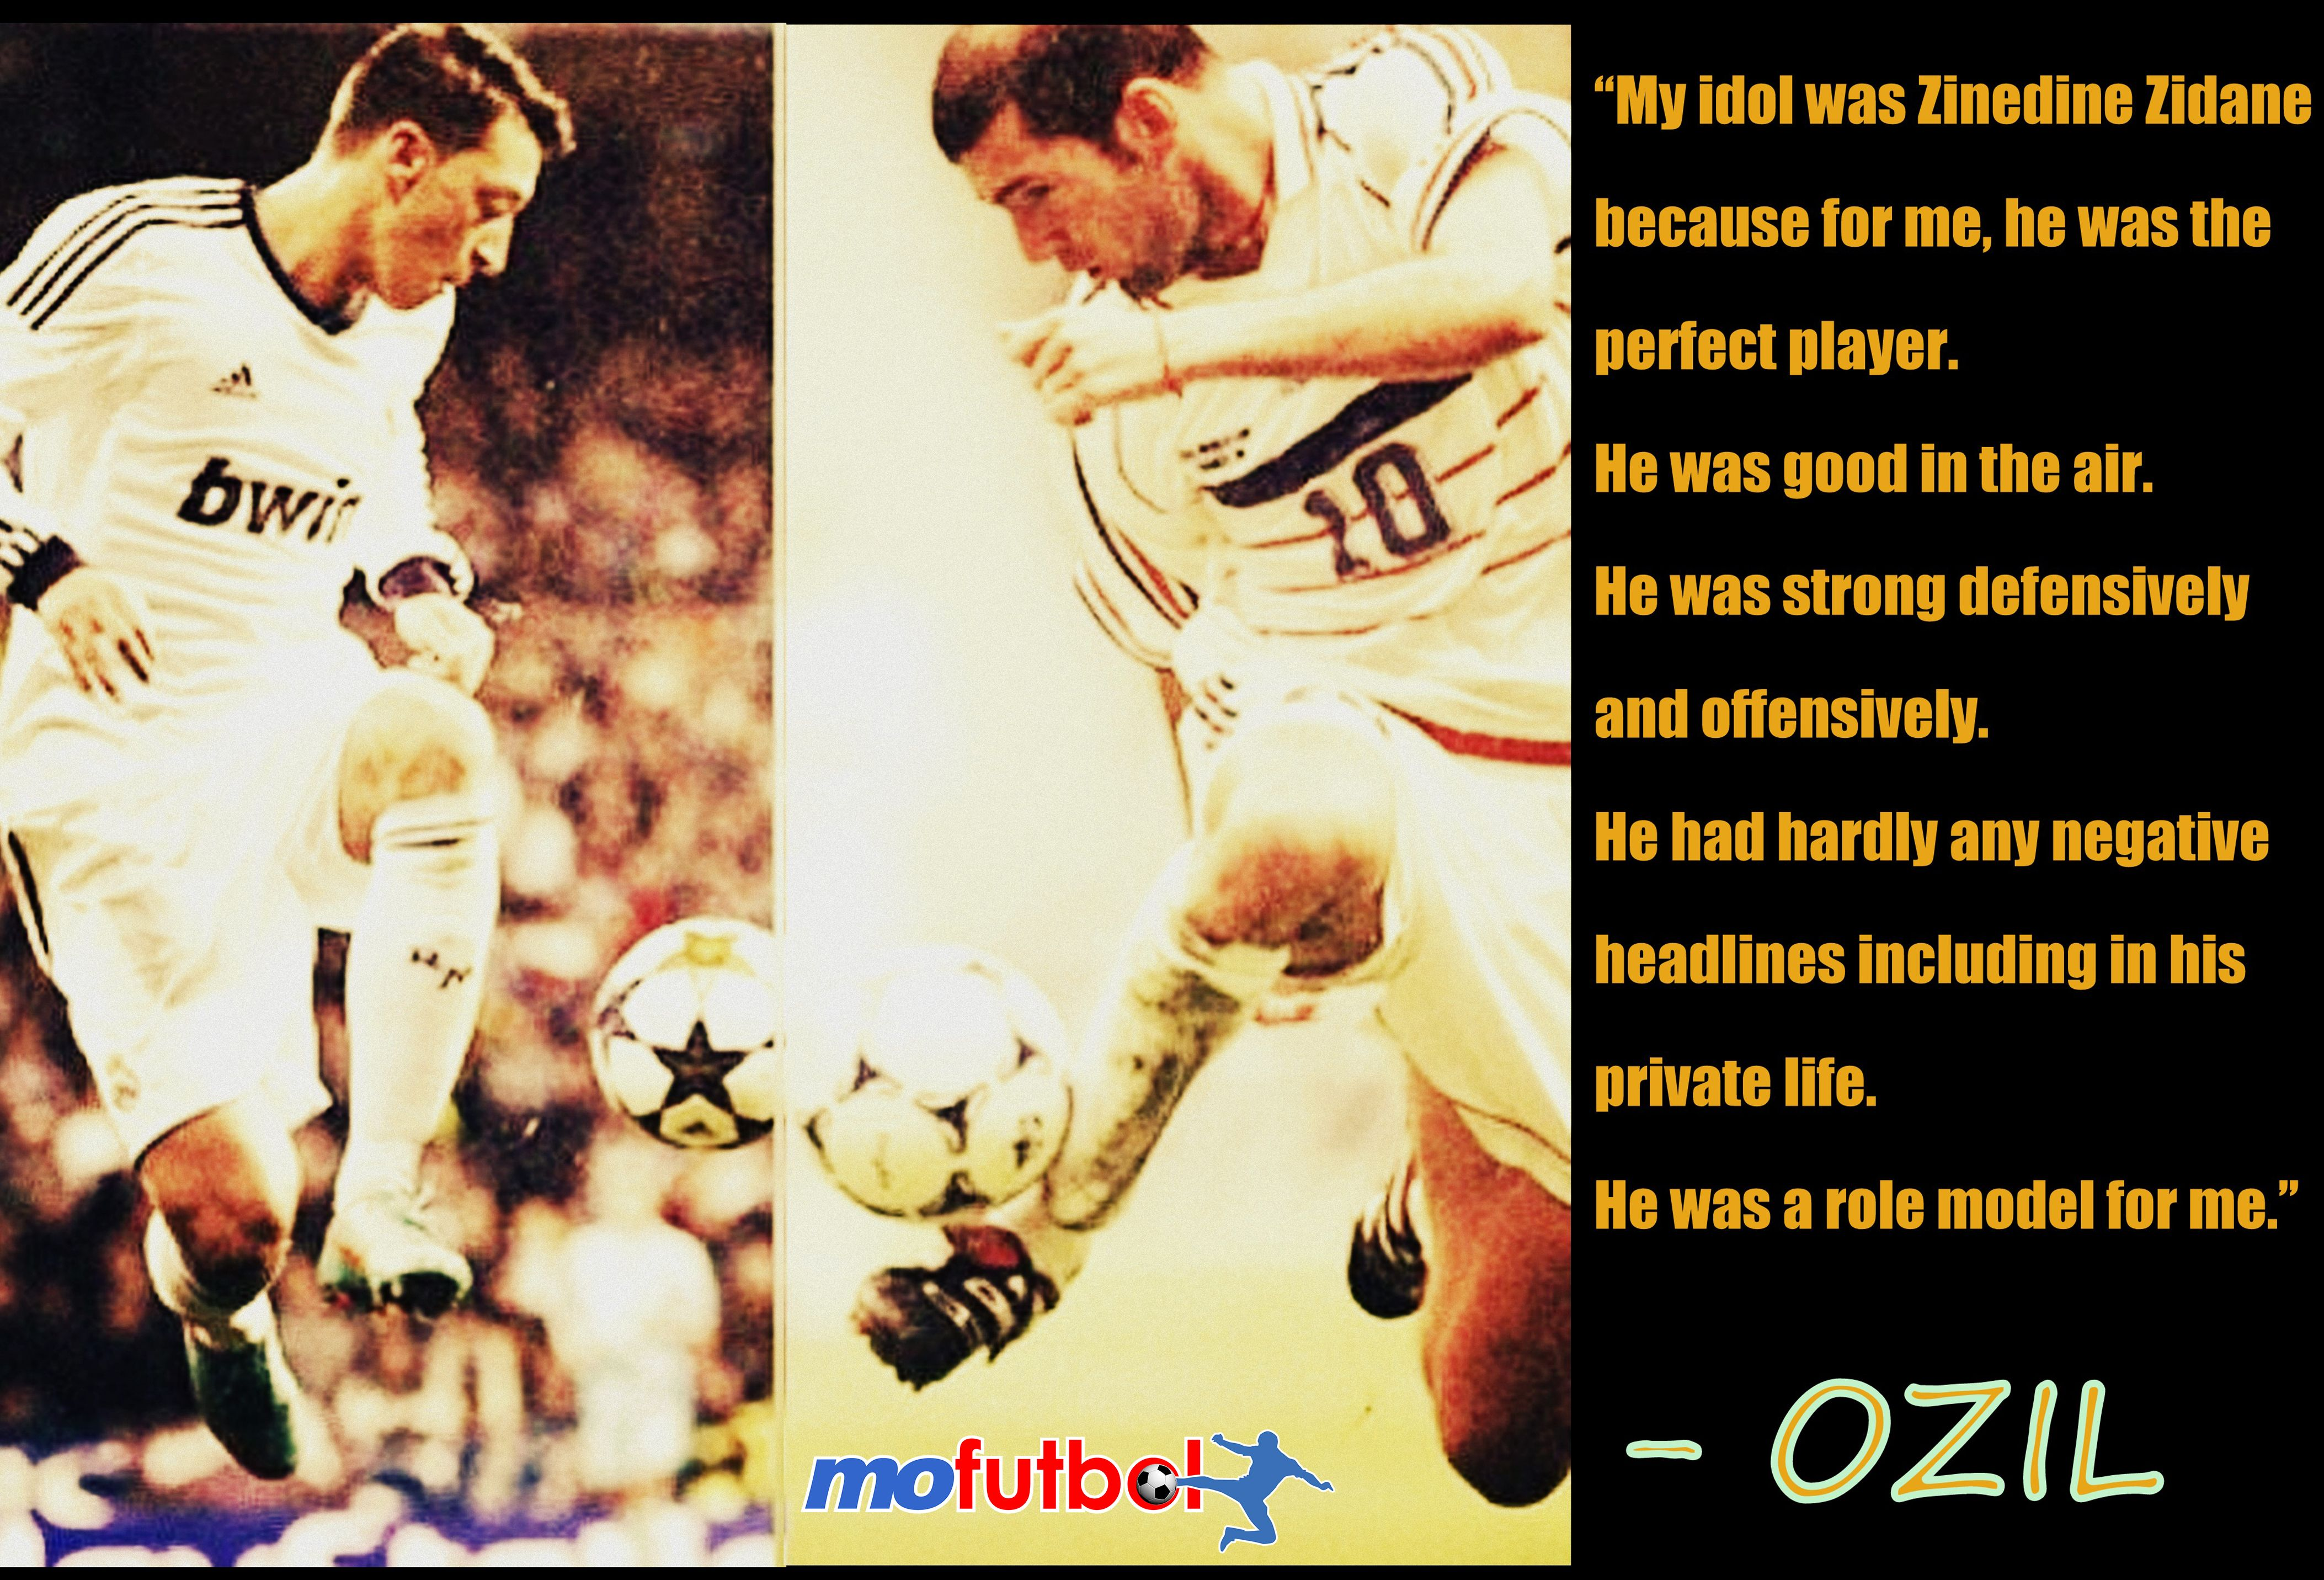 Zinedine Zidane Was A Role Model For Ozil To Know More About Ozil And Fifa World Cup 2014 Visit Http Bit Ly 1jtgp Role Models Zinedine Zidane Fifa World Cup